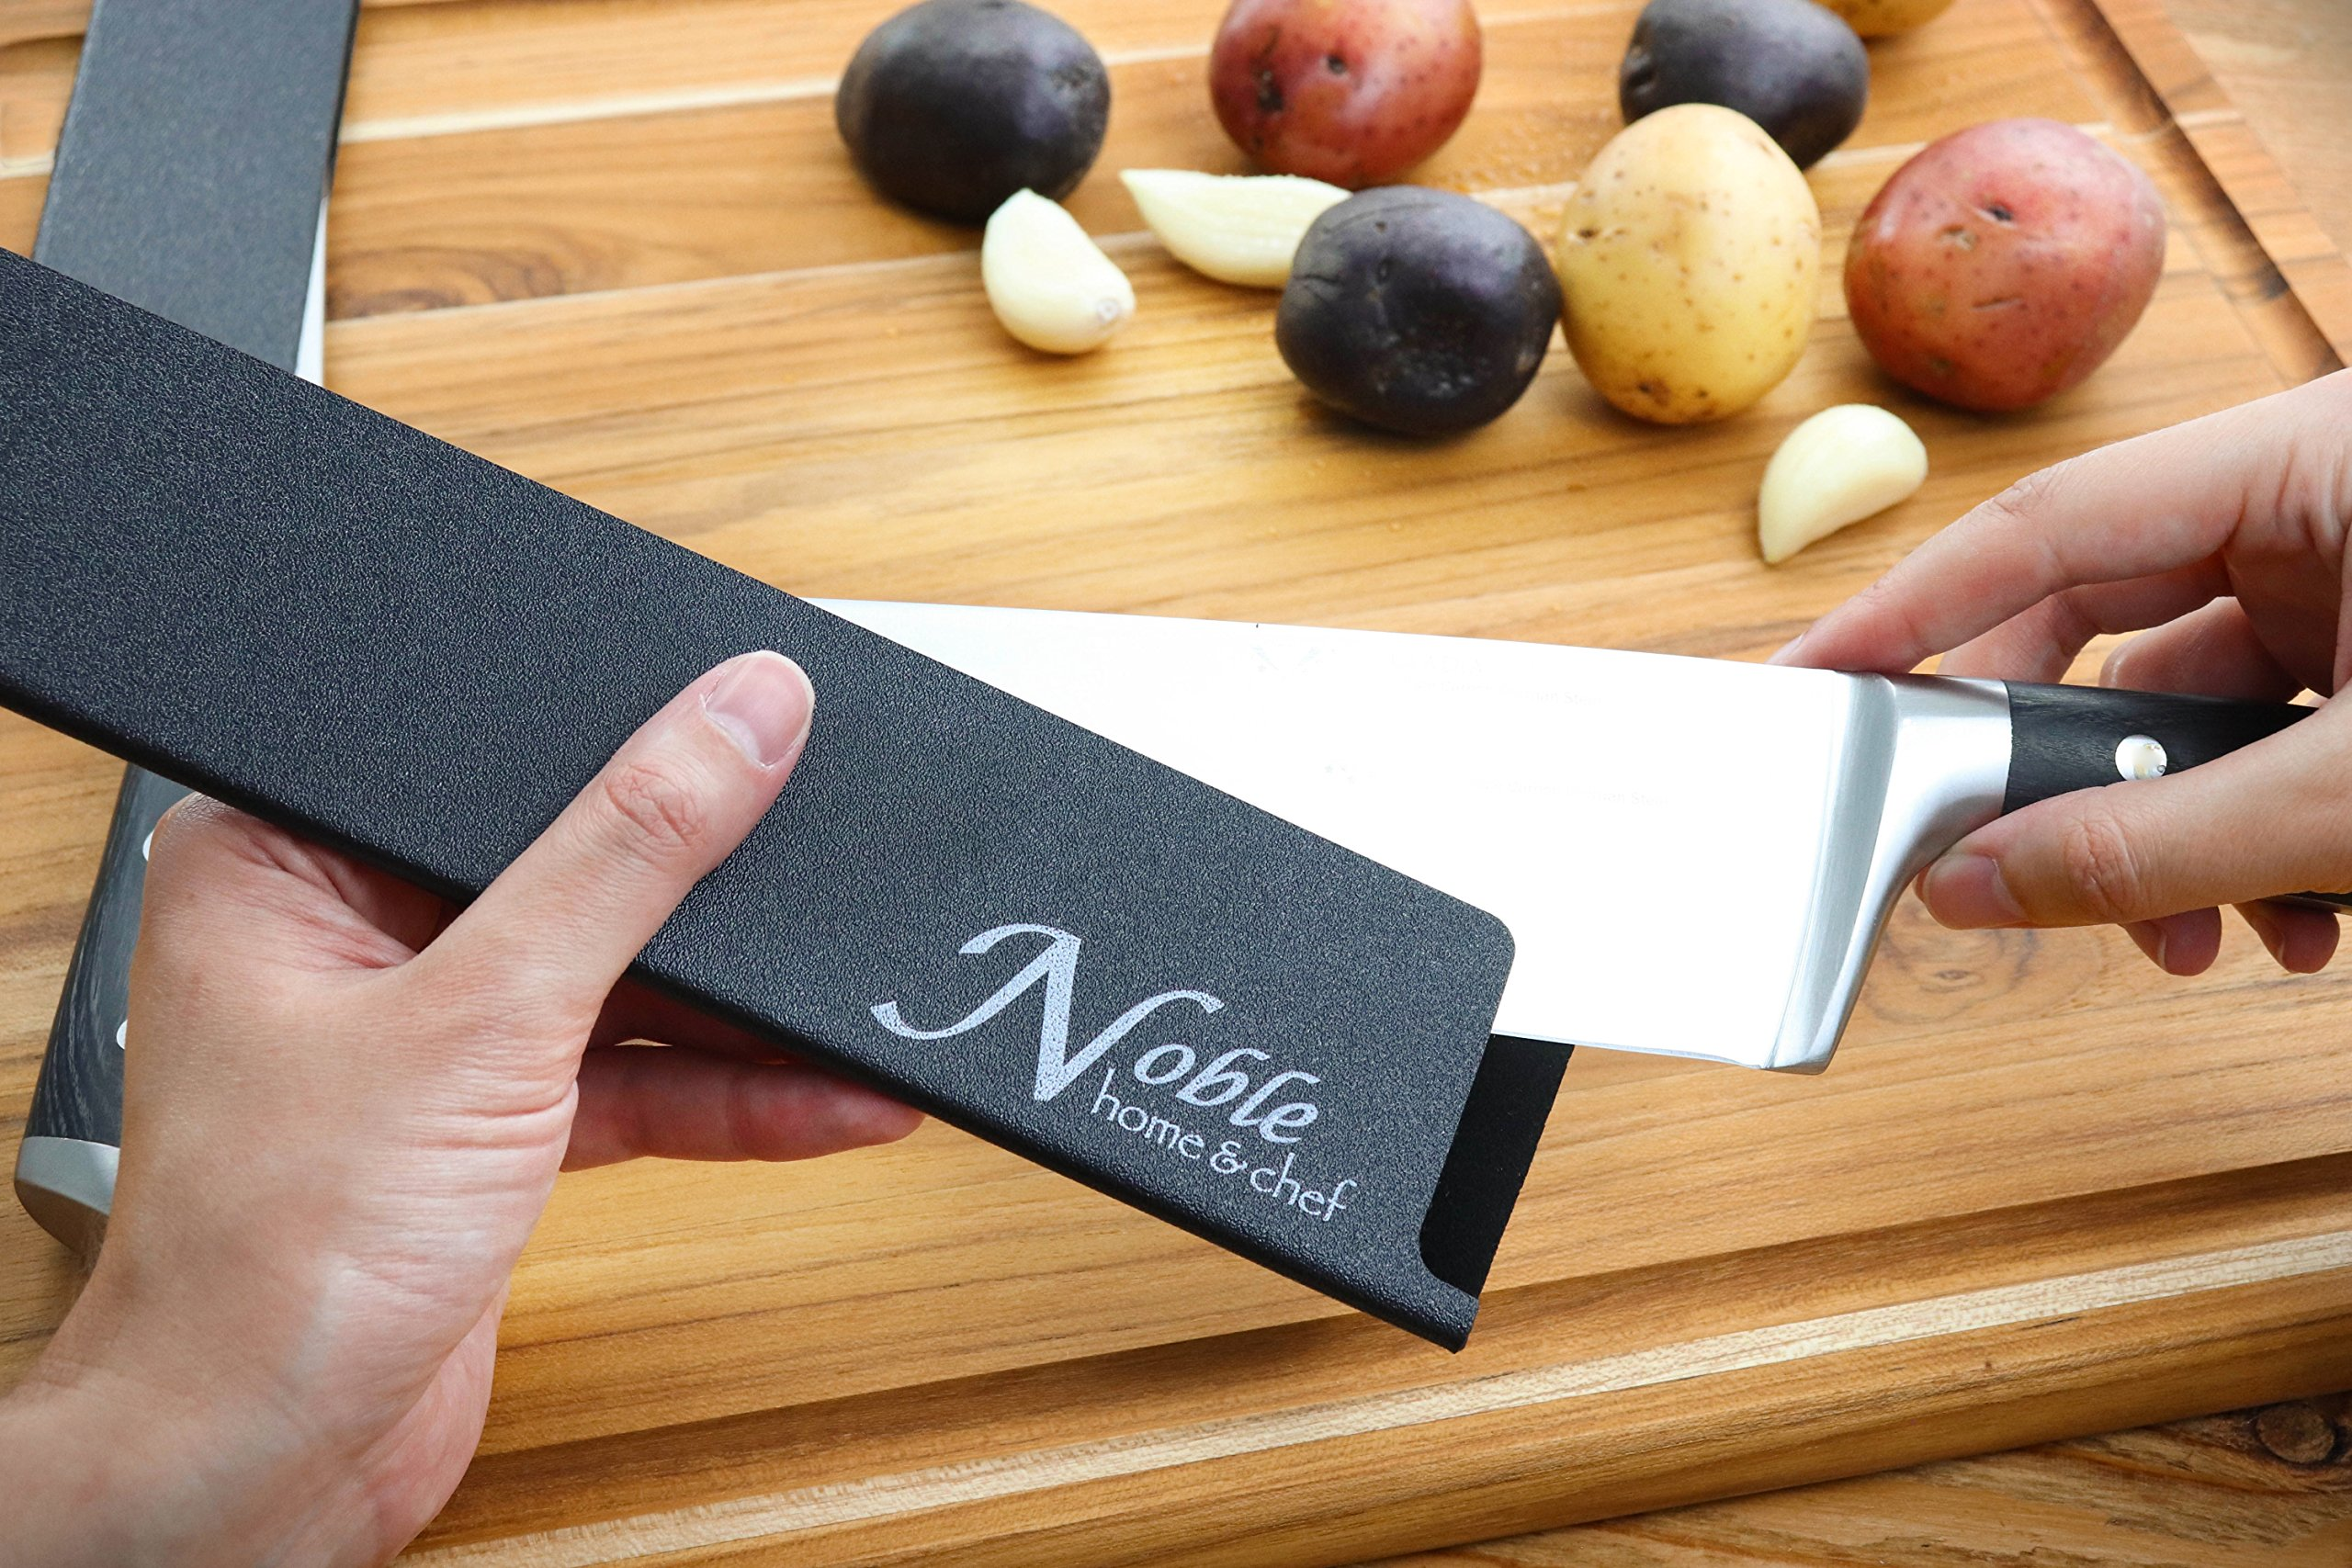 """2-Piece Universal Knife Edge Guards (8.5"""" and 10.5'') are More Durable, BPA-Free, Gentle on Your Blades, and Long-Lasting. Noble Home & Chef Knife Covers Are Non-Toxic and Abrasion Resistant! (Knives N by Noble Home & Chef (Image #5)"""